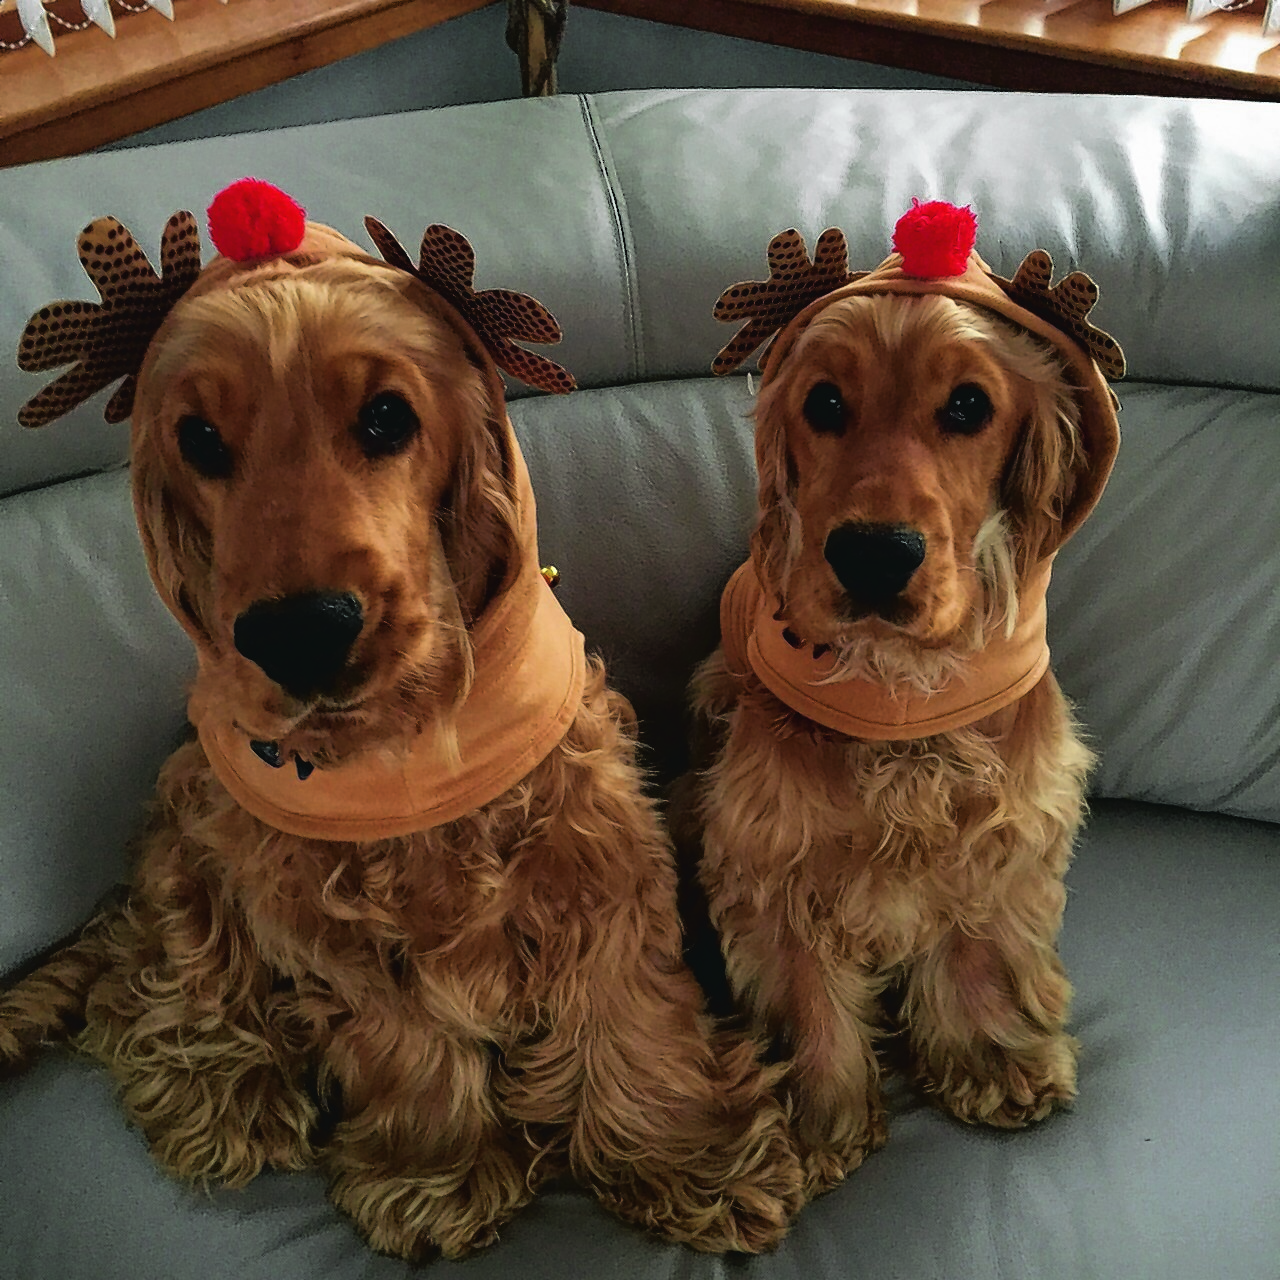 This is Olly and Lucy from Macduff all ready for Christmas. They are brother and sister and are nine months old. Olly is Alison's dog and Lucy is Amanda's dog. They are getting an early Christmas  present by being our joint winners this week.